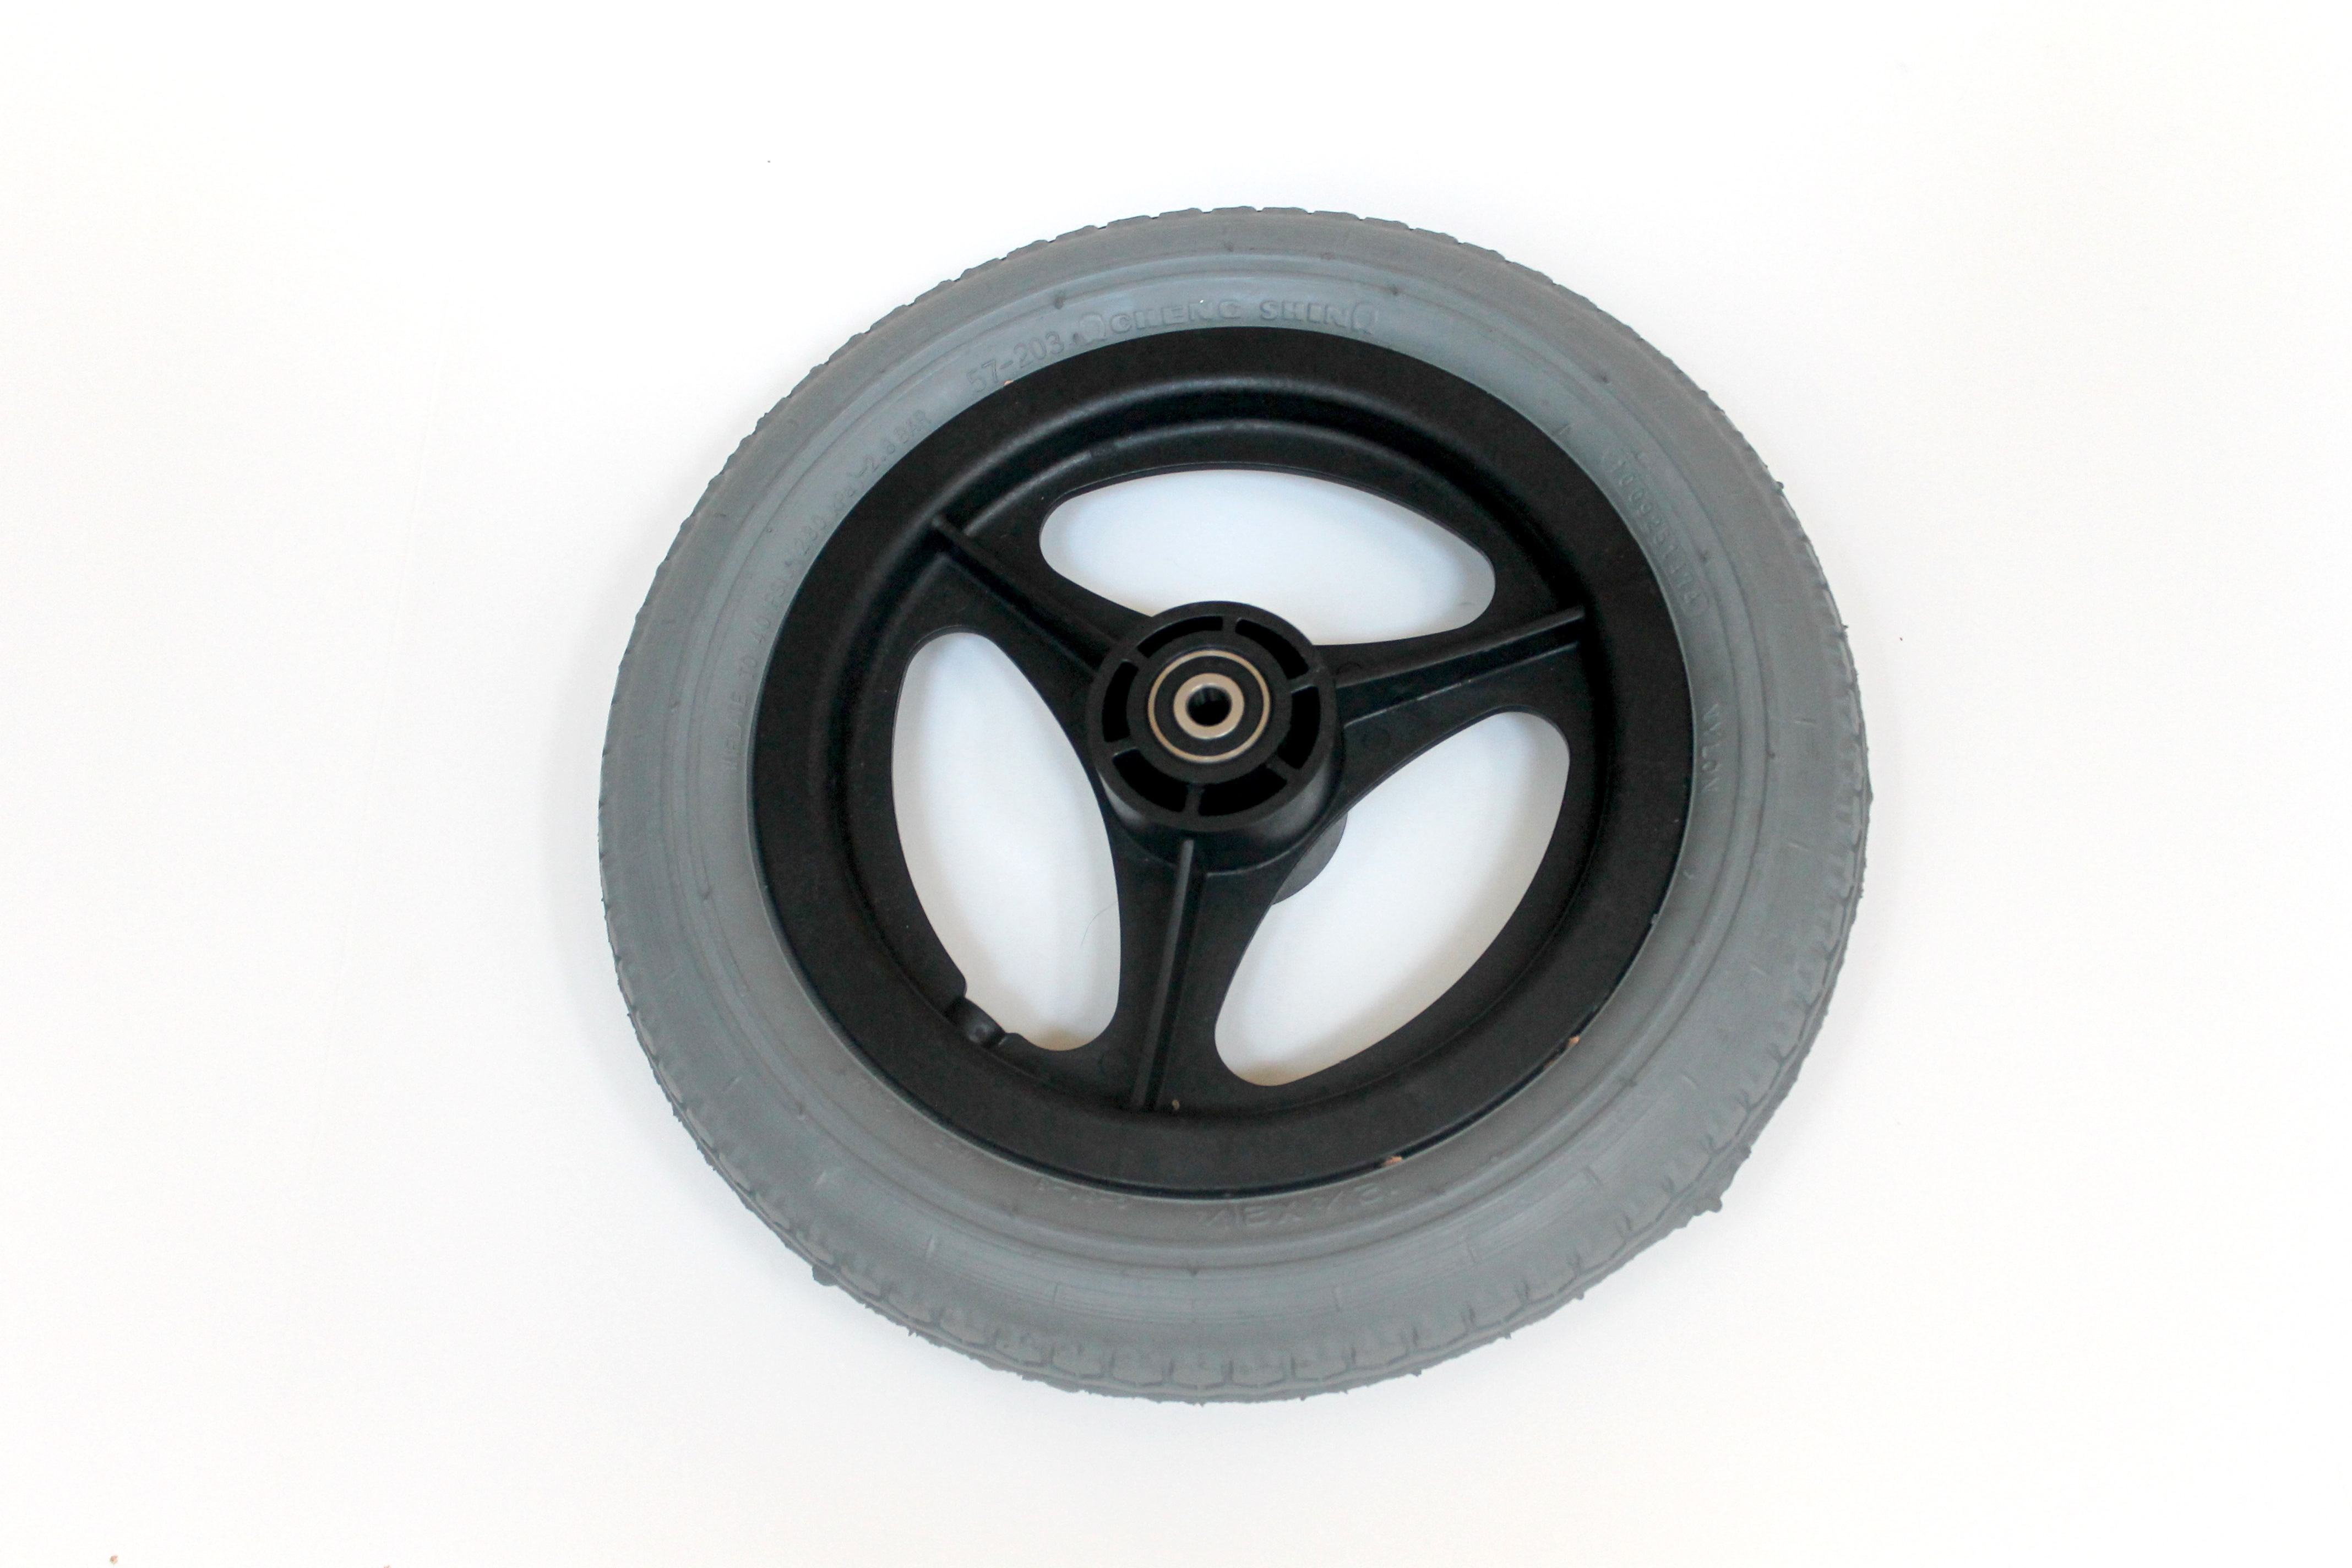 Atv Rims Wheel Covers : Quot inch atv wheels rolln´stroll